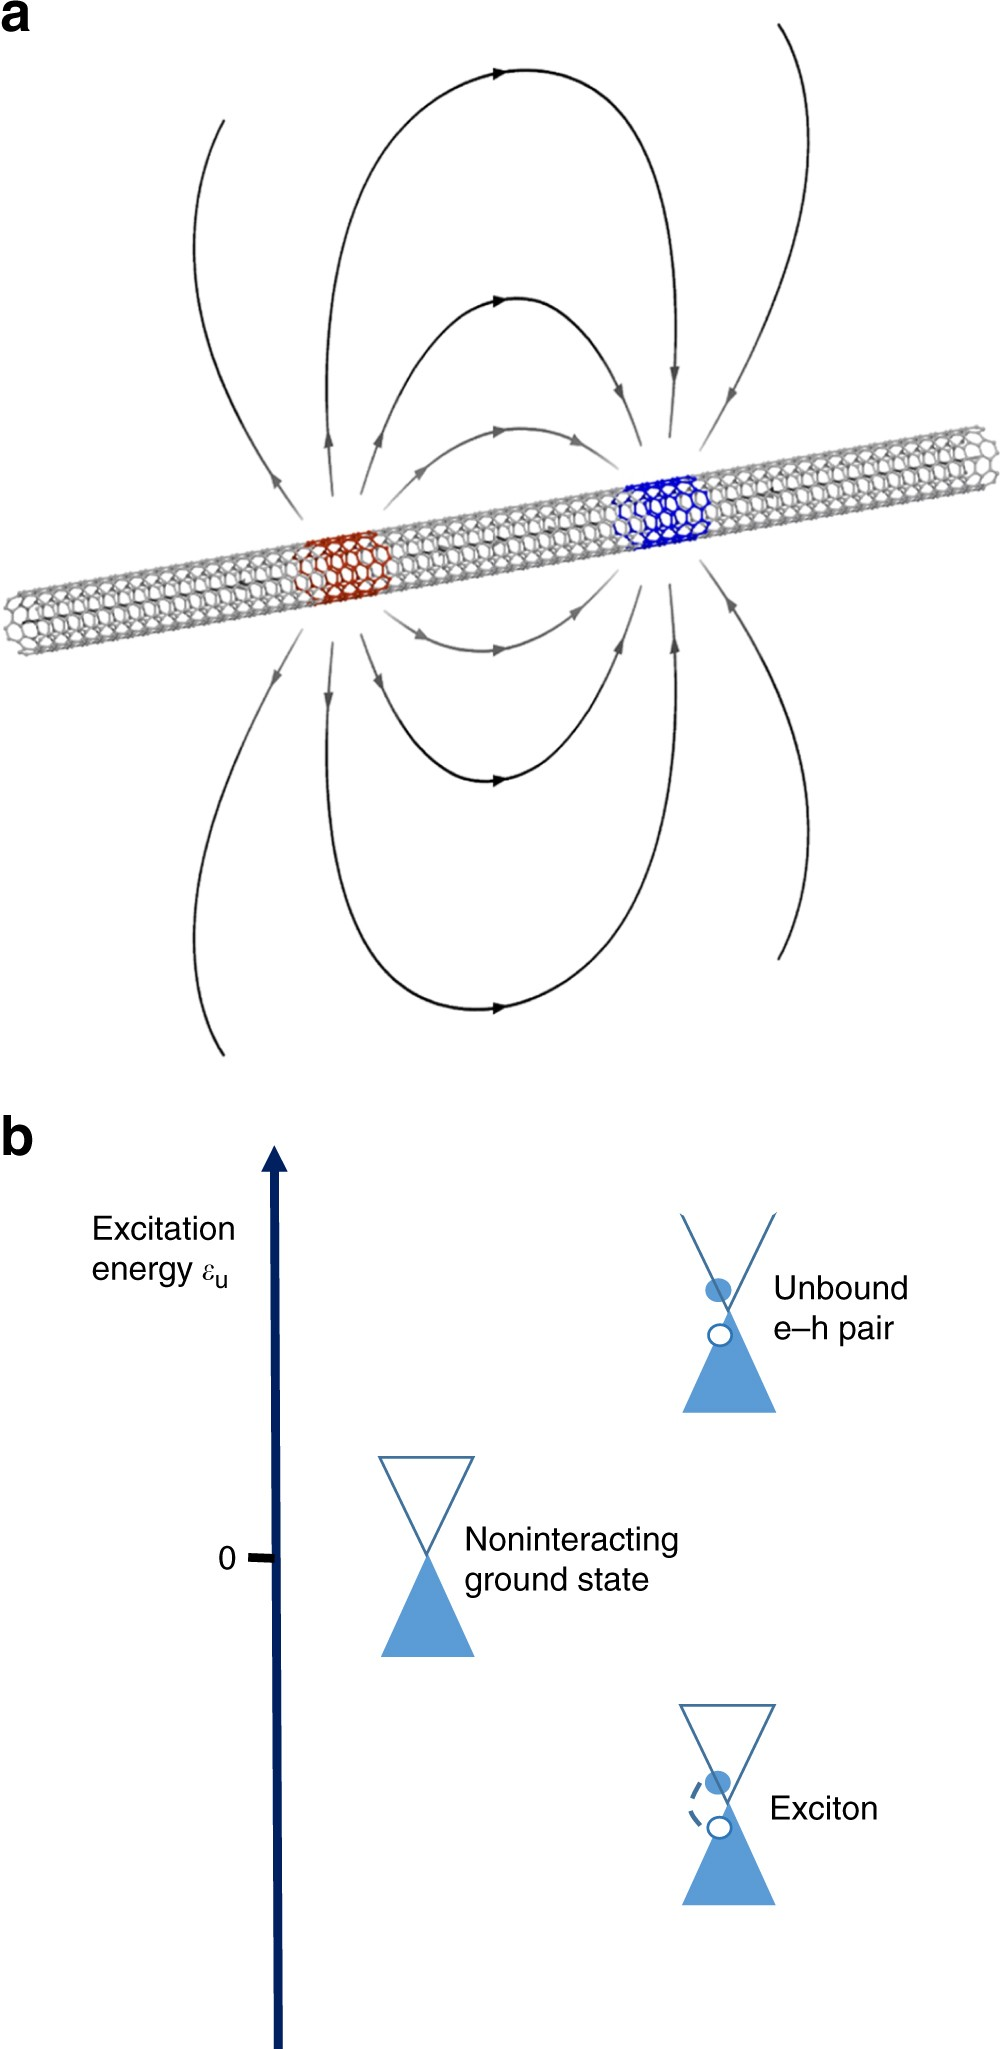 Carbon Nanotubes As Excitonic Insulators Nature Communications This Ladder Diagram Arrangement May Be Easily Coded Shown In The